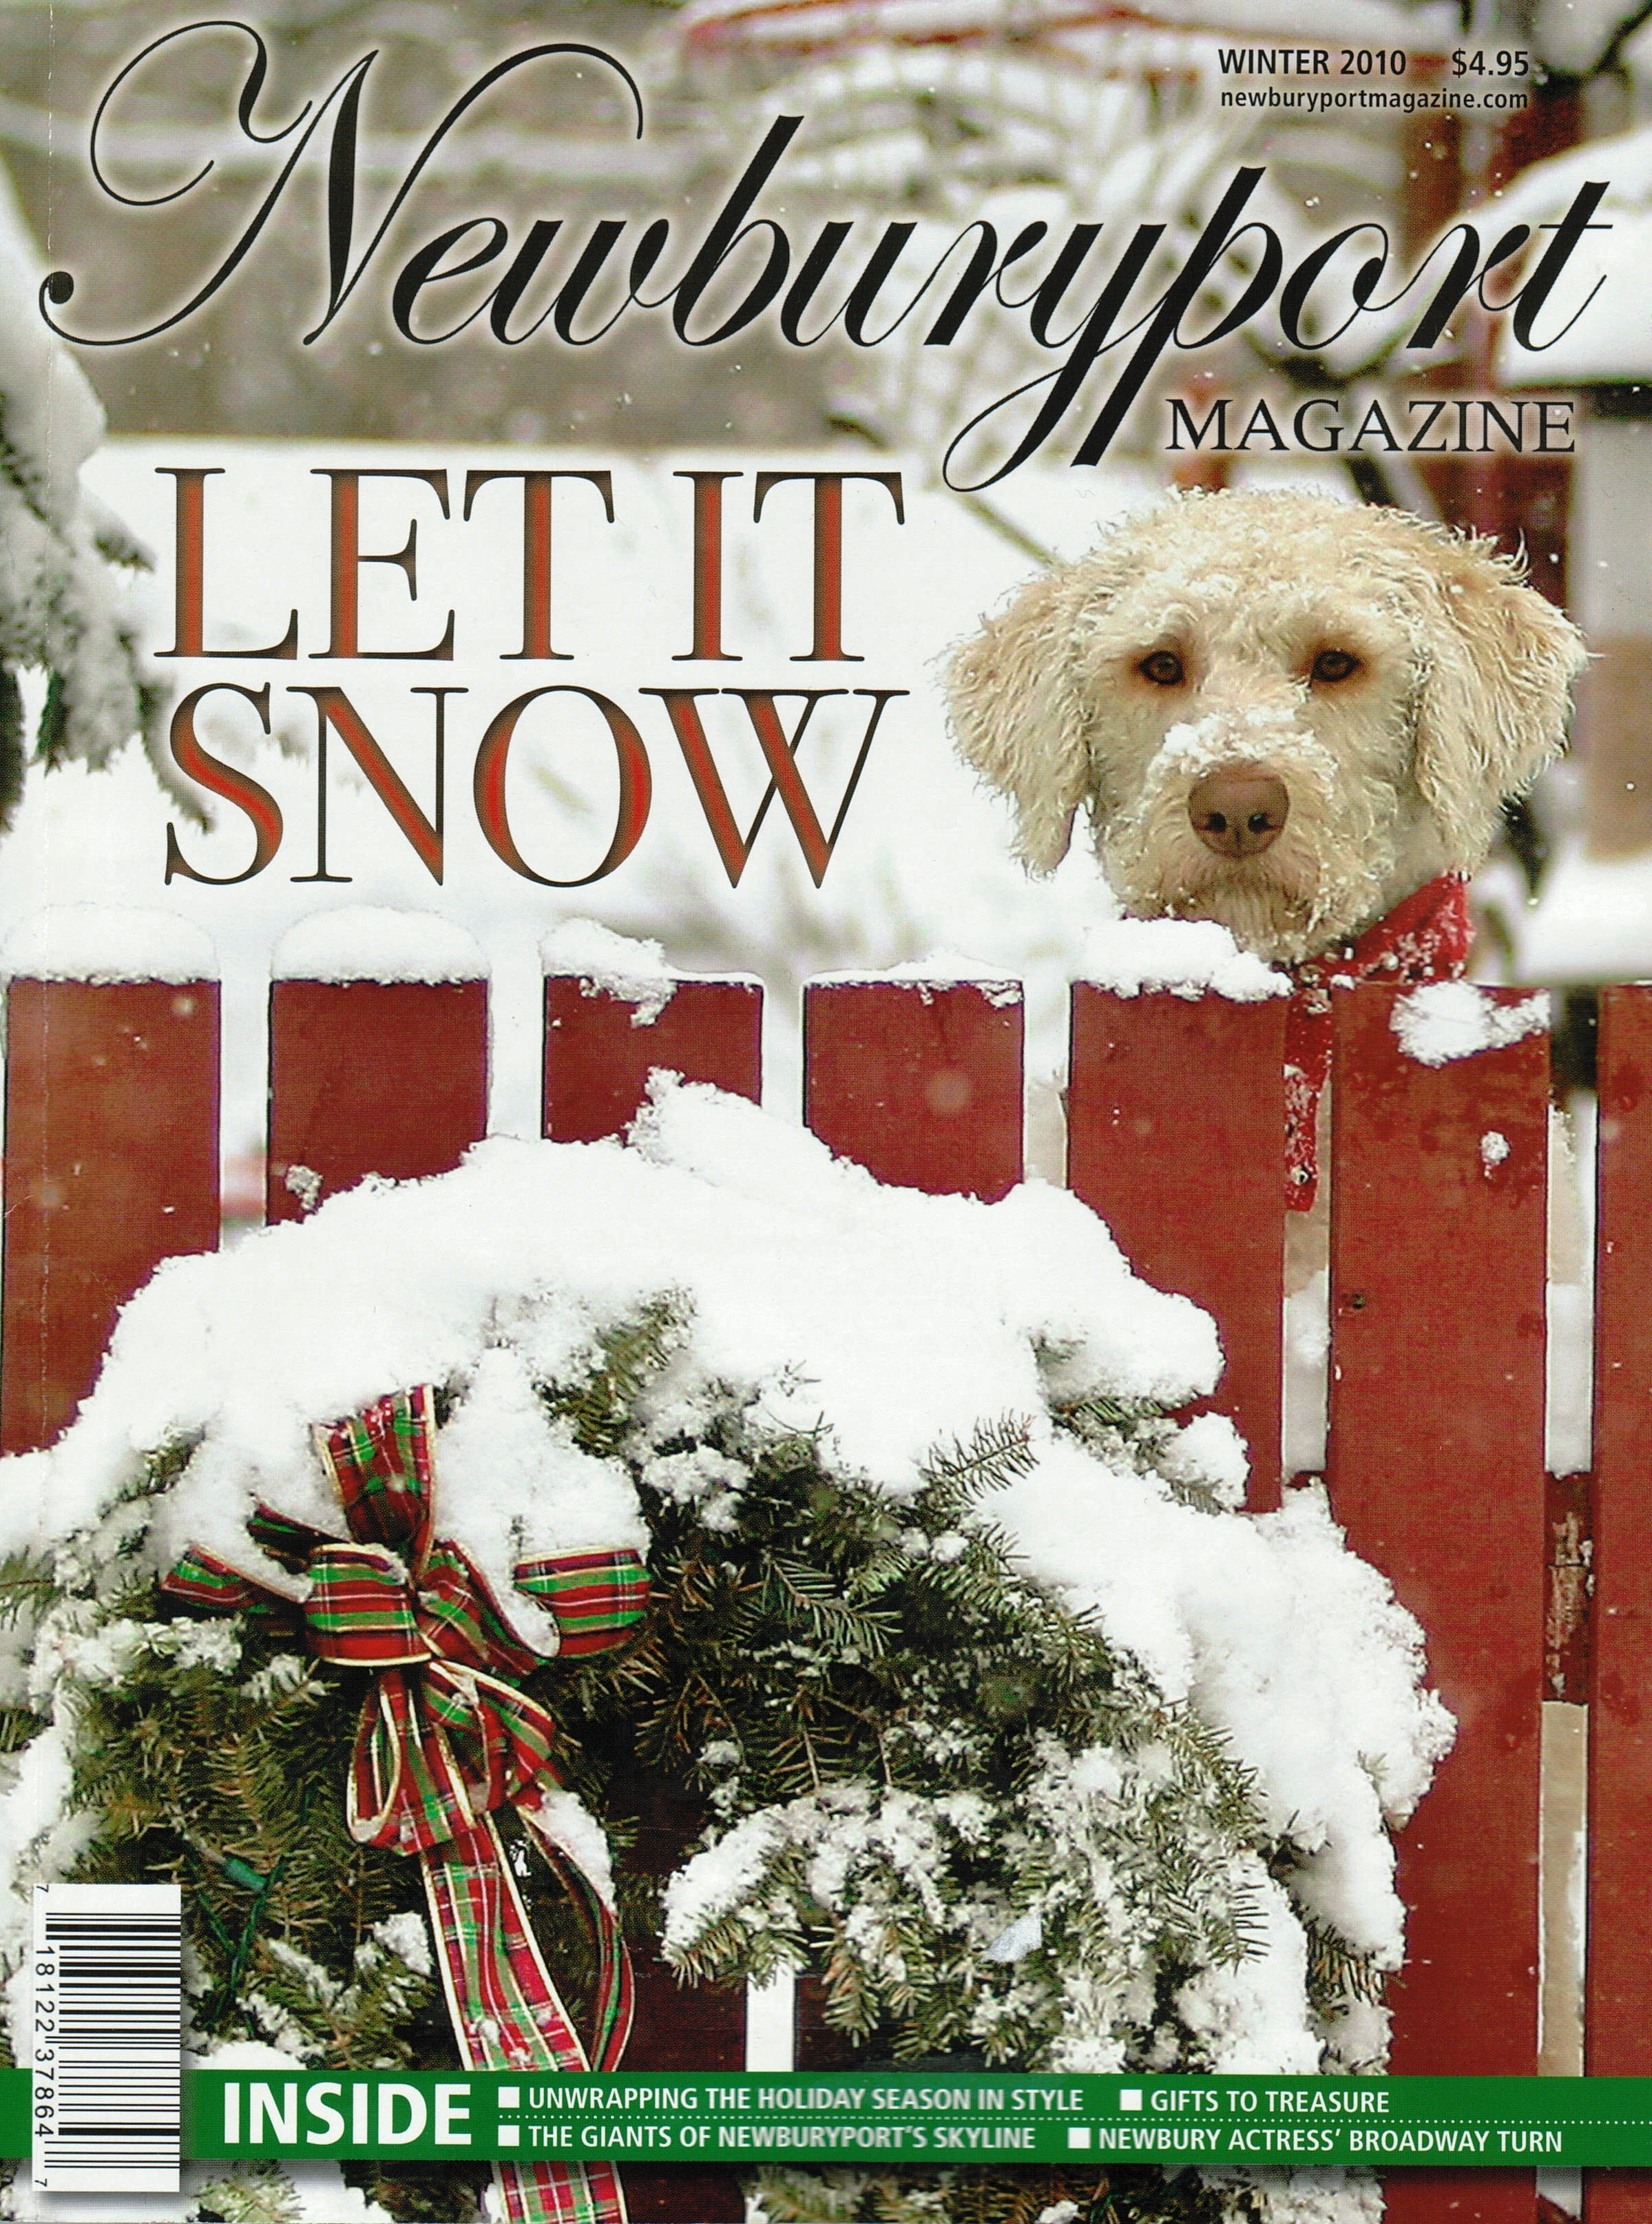 Newburyport Magazine